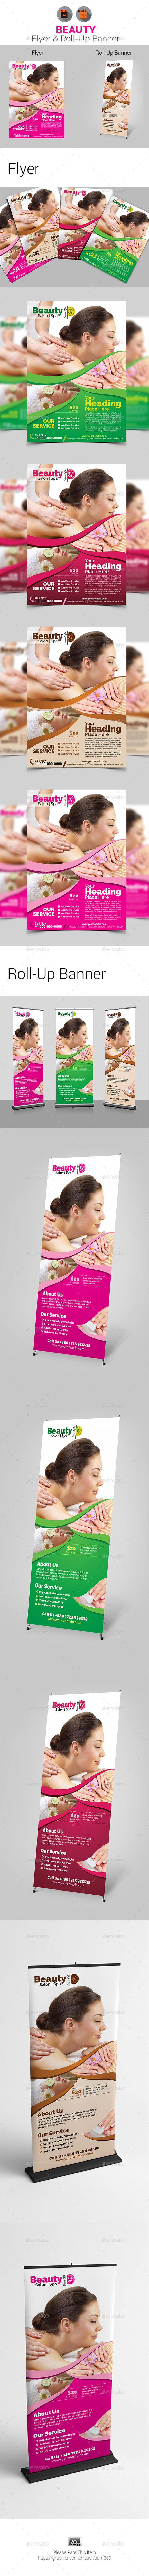 Beauty Flyer & Roll-Up Banner Template - Commerce Flyers